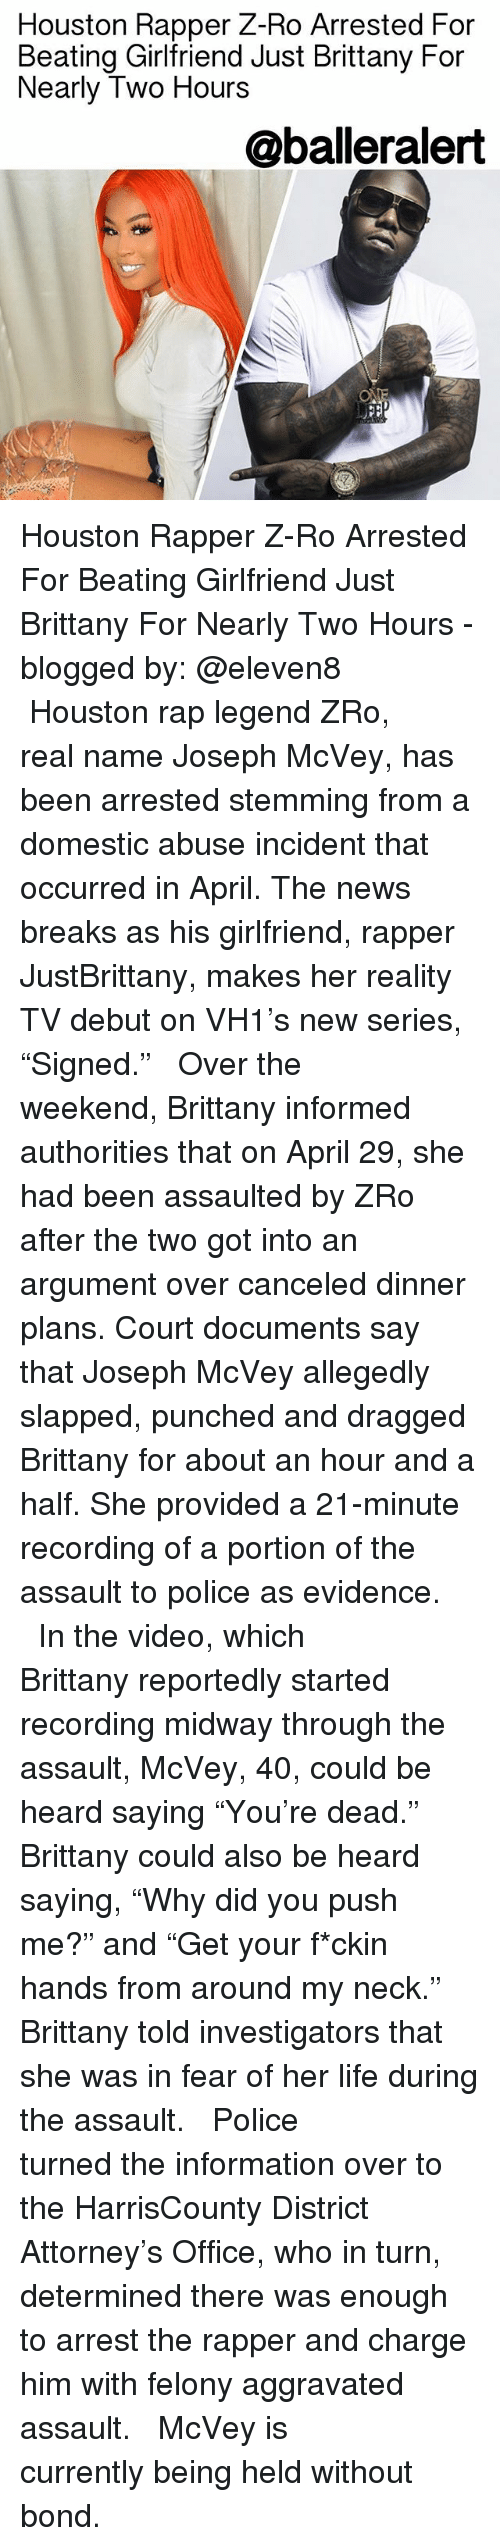 """domestic abuse: Houston Rapper Z-Ro Arrested For  Beating Girlfriend Just Brittany For  Nearly Two Hours  @balleralert Houston Rapper Z-Ro Arrested For Beating Girlfriend Just Brittany For Nearly Two Hours - blogged by: @eleven8 ⠀⠀⠀⠀⠀⠀⠀⠀⠀ ⠀⠀⠀⠀⠀⠀⠀⠀⠀ Houston rap legend ZRo, real name Joseph McVey, has been arrested stemming from a domestic abuse incident that occurred in April. The news breaks as his girlfriend, rapper JustBrittany, makes her reality TV debut on VH1's new series, """"Signed."""" ⠀⠀⠀⠀⠀⠀⠀⠀⠀ ⠀⠀⠀⠀⠀⠀⠀⠀⠀ Over the weekend, Brittany informed authorities that on April 29, she had been assaulted by ZRo after the two got into an argument over canceled dinner plans. Court documents say that Joseph McVey allegedly slapped, punched and dragged Brittany for about an hour and a half. She provided a 21-minute recording of a portion of the assault to police as evidence. ⠀⠀⠀⠀⠀⠀⠀⠀⠀ ⠀⠀⠀⠀⠀⠀⠀⠀⠀ In the video, which Brittany reportedly started recording midway through the assault, McVey, 40, could be heard saying """"You're dead."""" Brittany could also be heard saying, """"Why did you push me?"""" and """"Get your f*ckin hands from around my neck."""" Brittany told investigators that she was in fear of her life during the assault. ⠀⠀⠀⠀⠀⠀⠀⠀⠀ ⠀⠀⠀⠀⠀⠀⠀⠀⠀ Police turned the information over to the HarrisCounty District Attorney's Office, who in turn, determined there was enough to arrest the rapper and charge him with felony aggravated assault. ⠀⠀⠀⠀⠀⠀⠀⠀⠀ ⠀⠀⠀⠀⠀⠀⠀⠀⠀ McVey is currently being held without bond."""